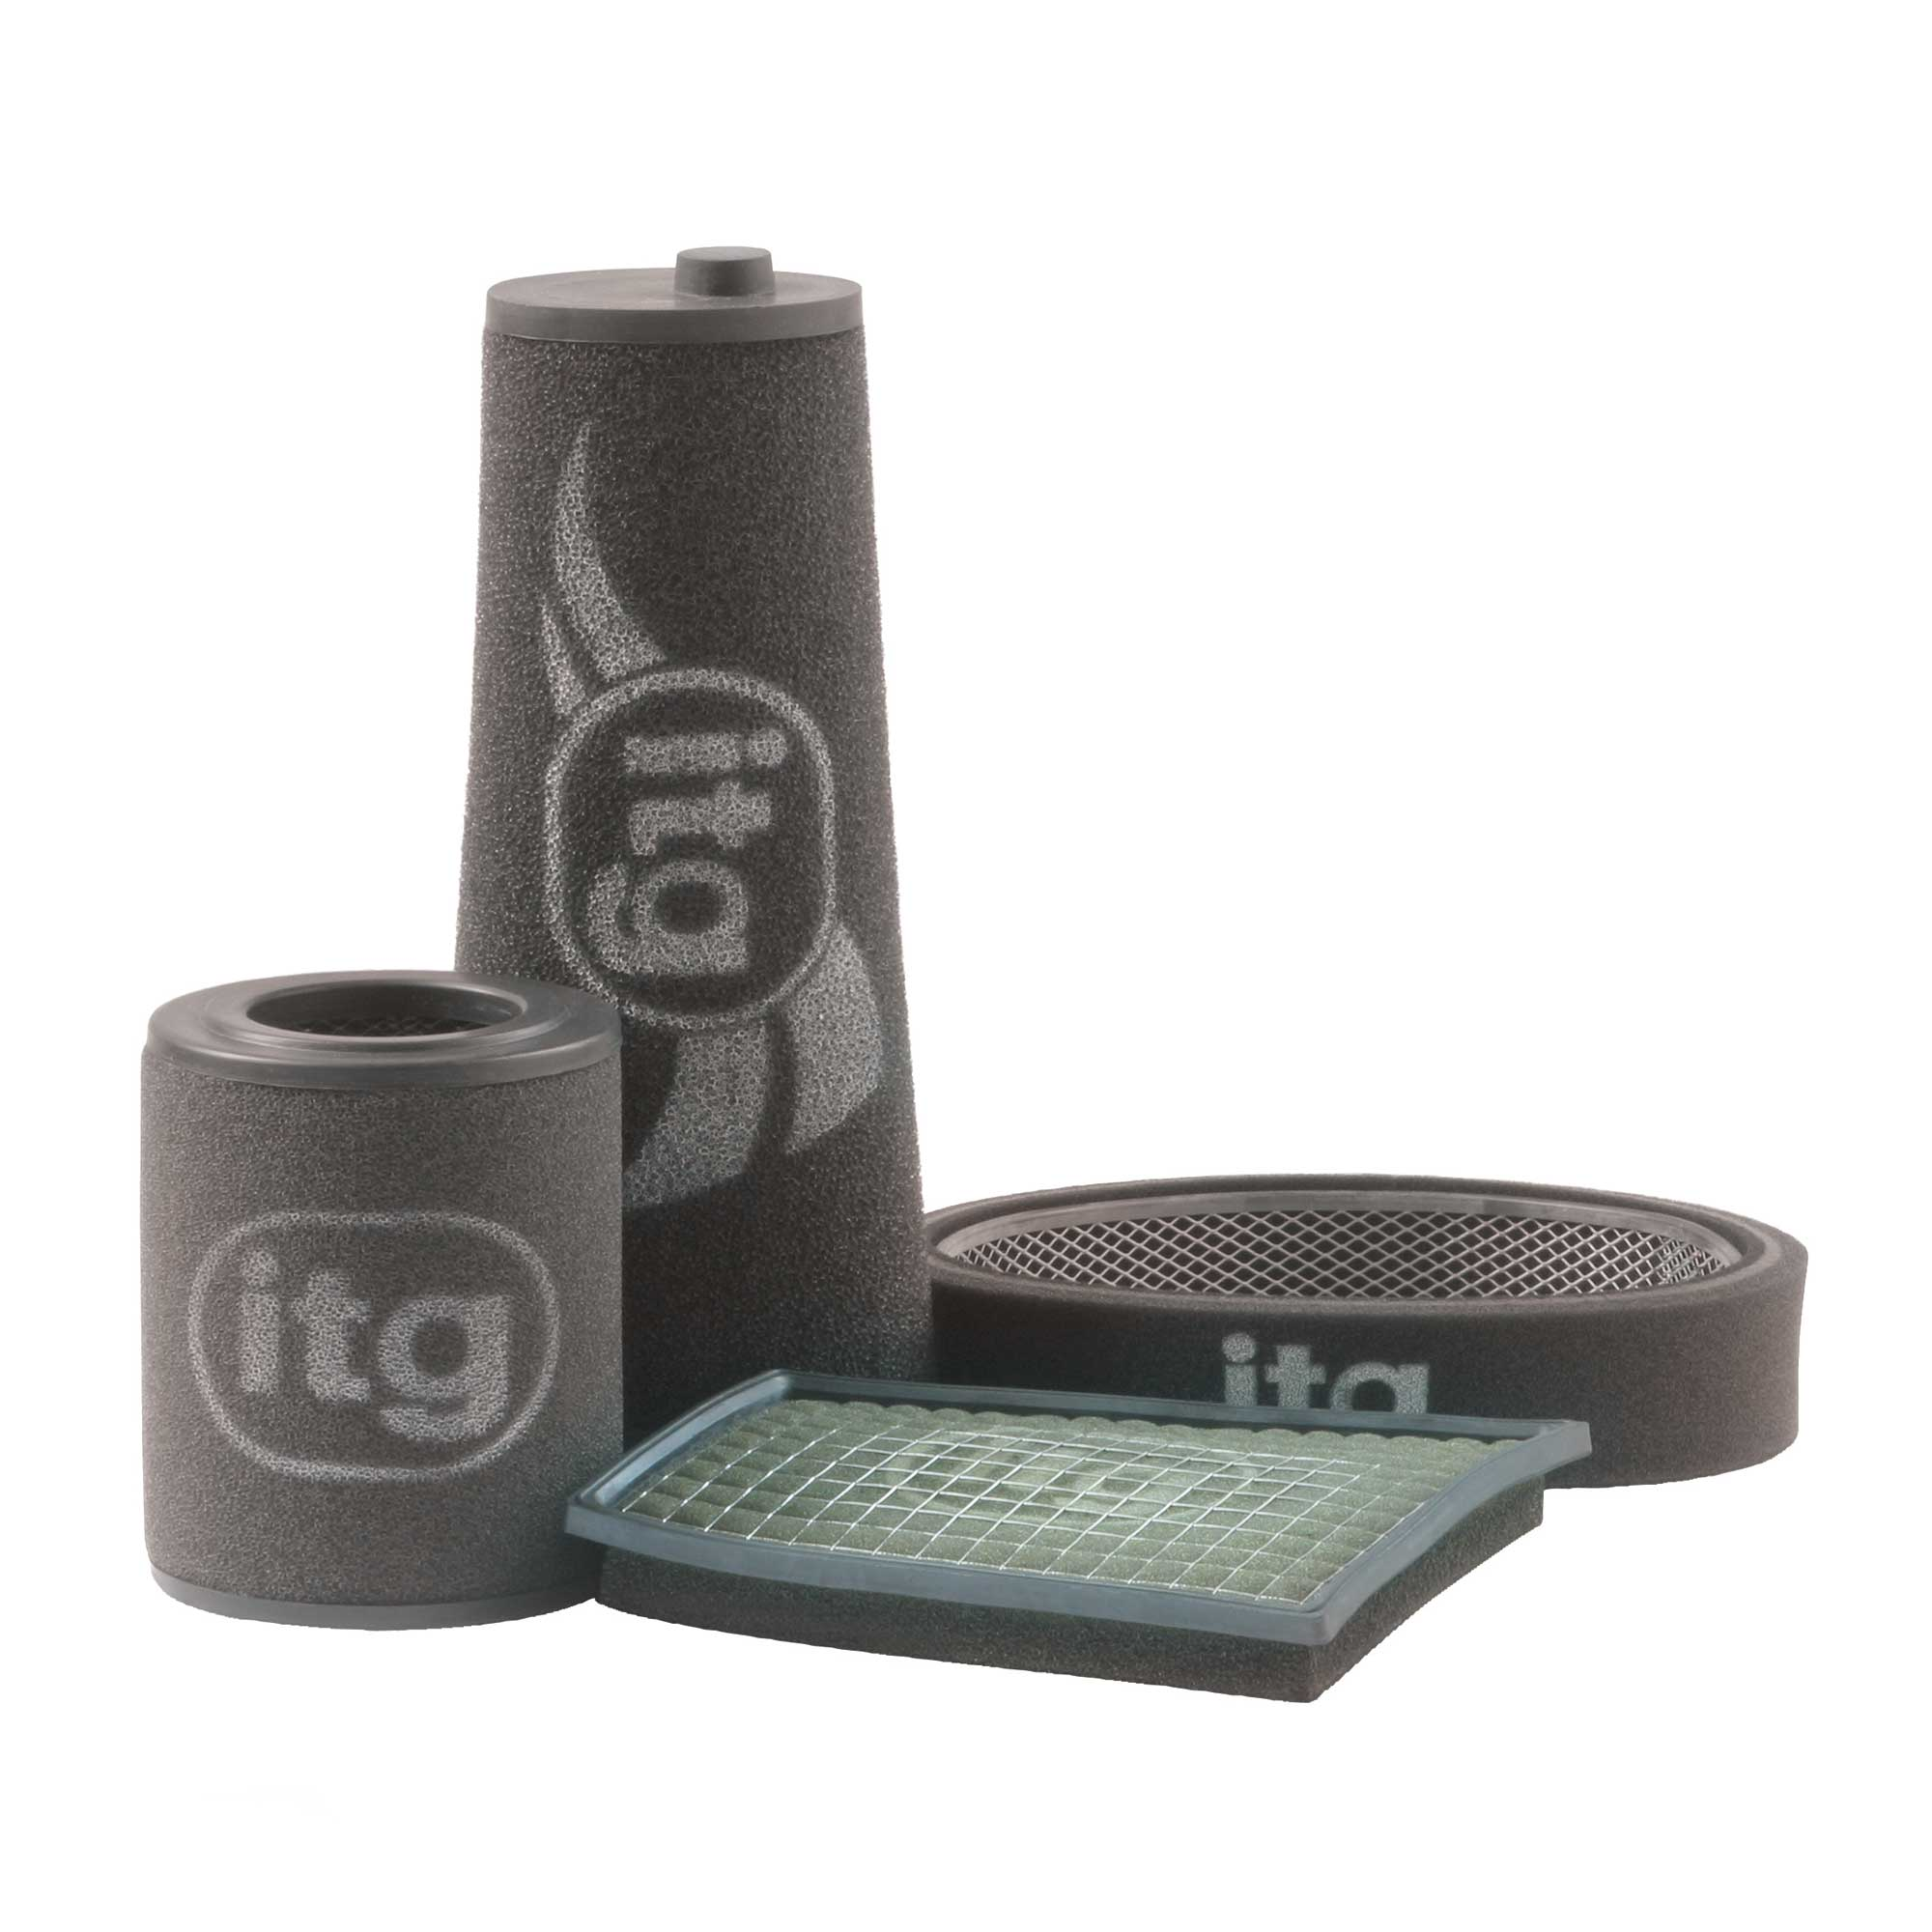 ITG Pro Filter Performance Direct Replacement Element WB-482